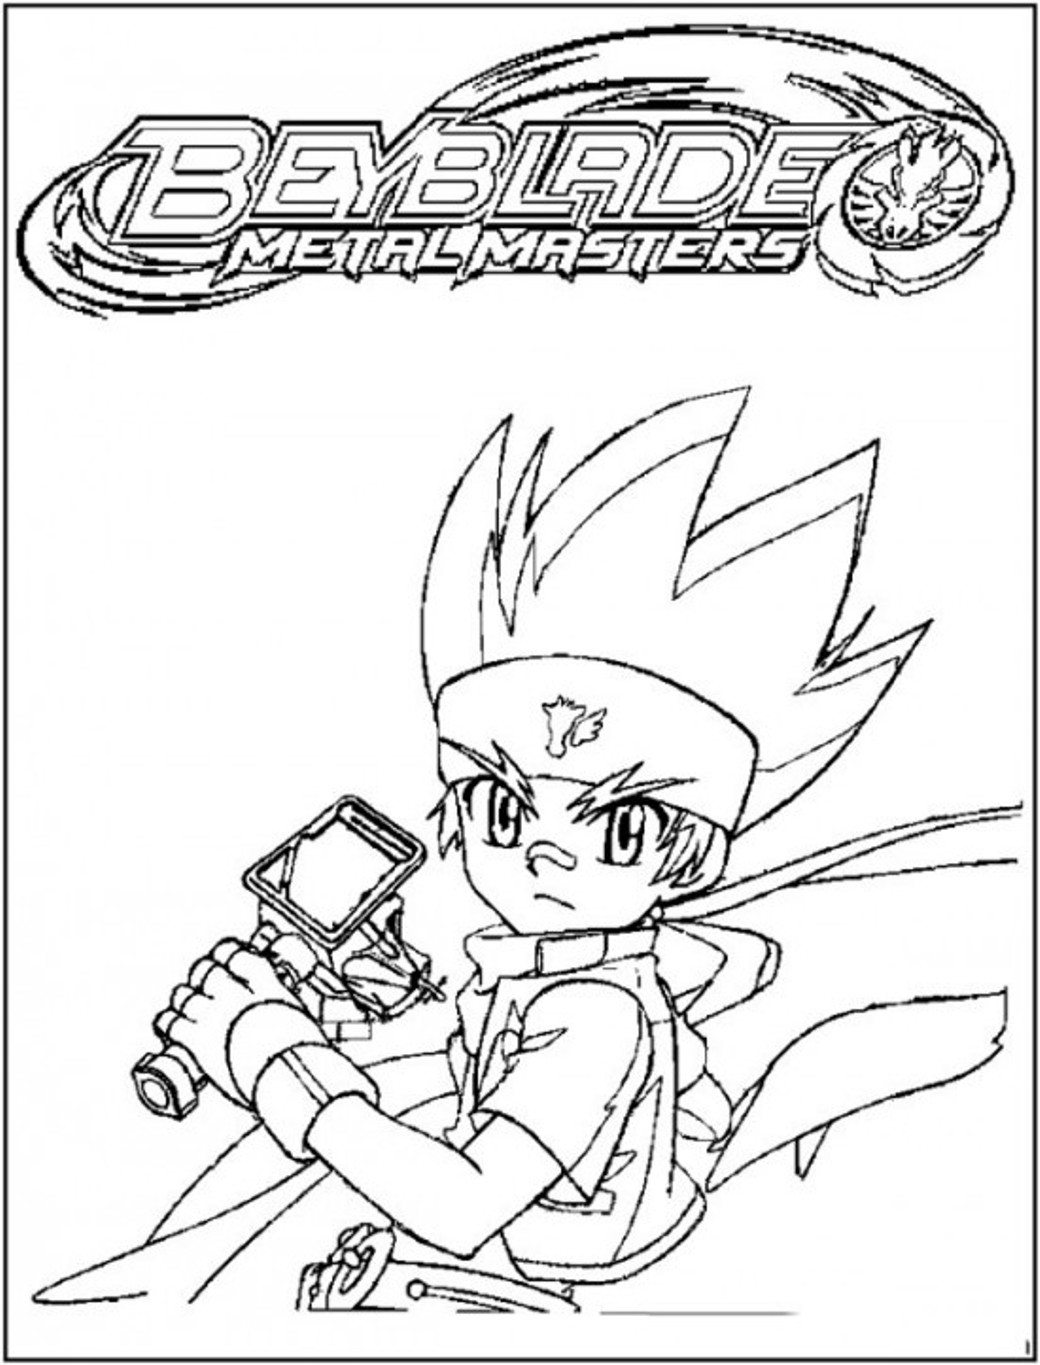 beyblade characters coloring pages beyblade coloring pages 57 images free printable coloring pages characters beyblade